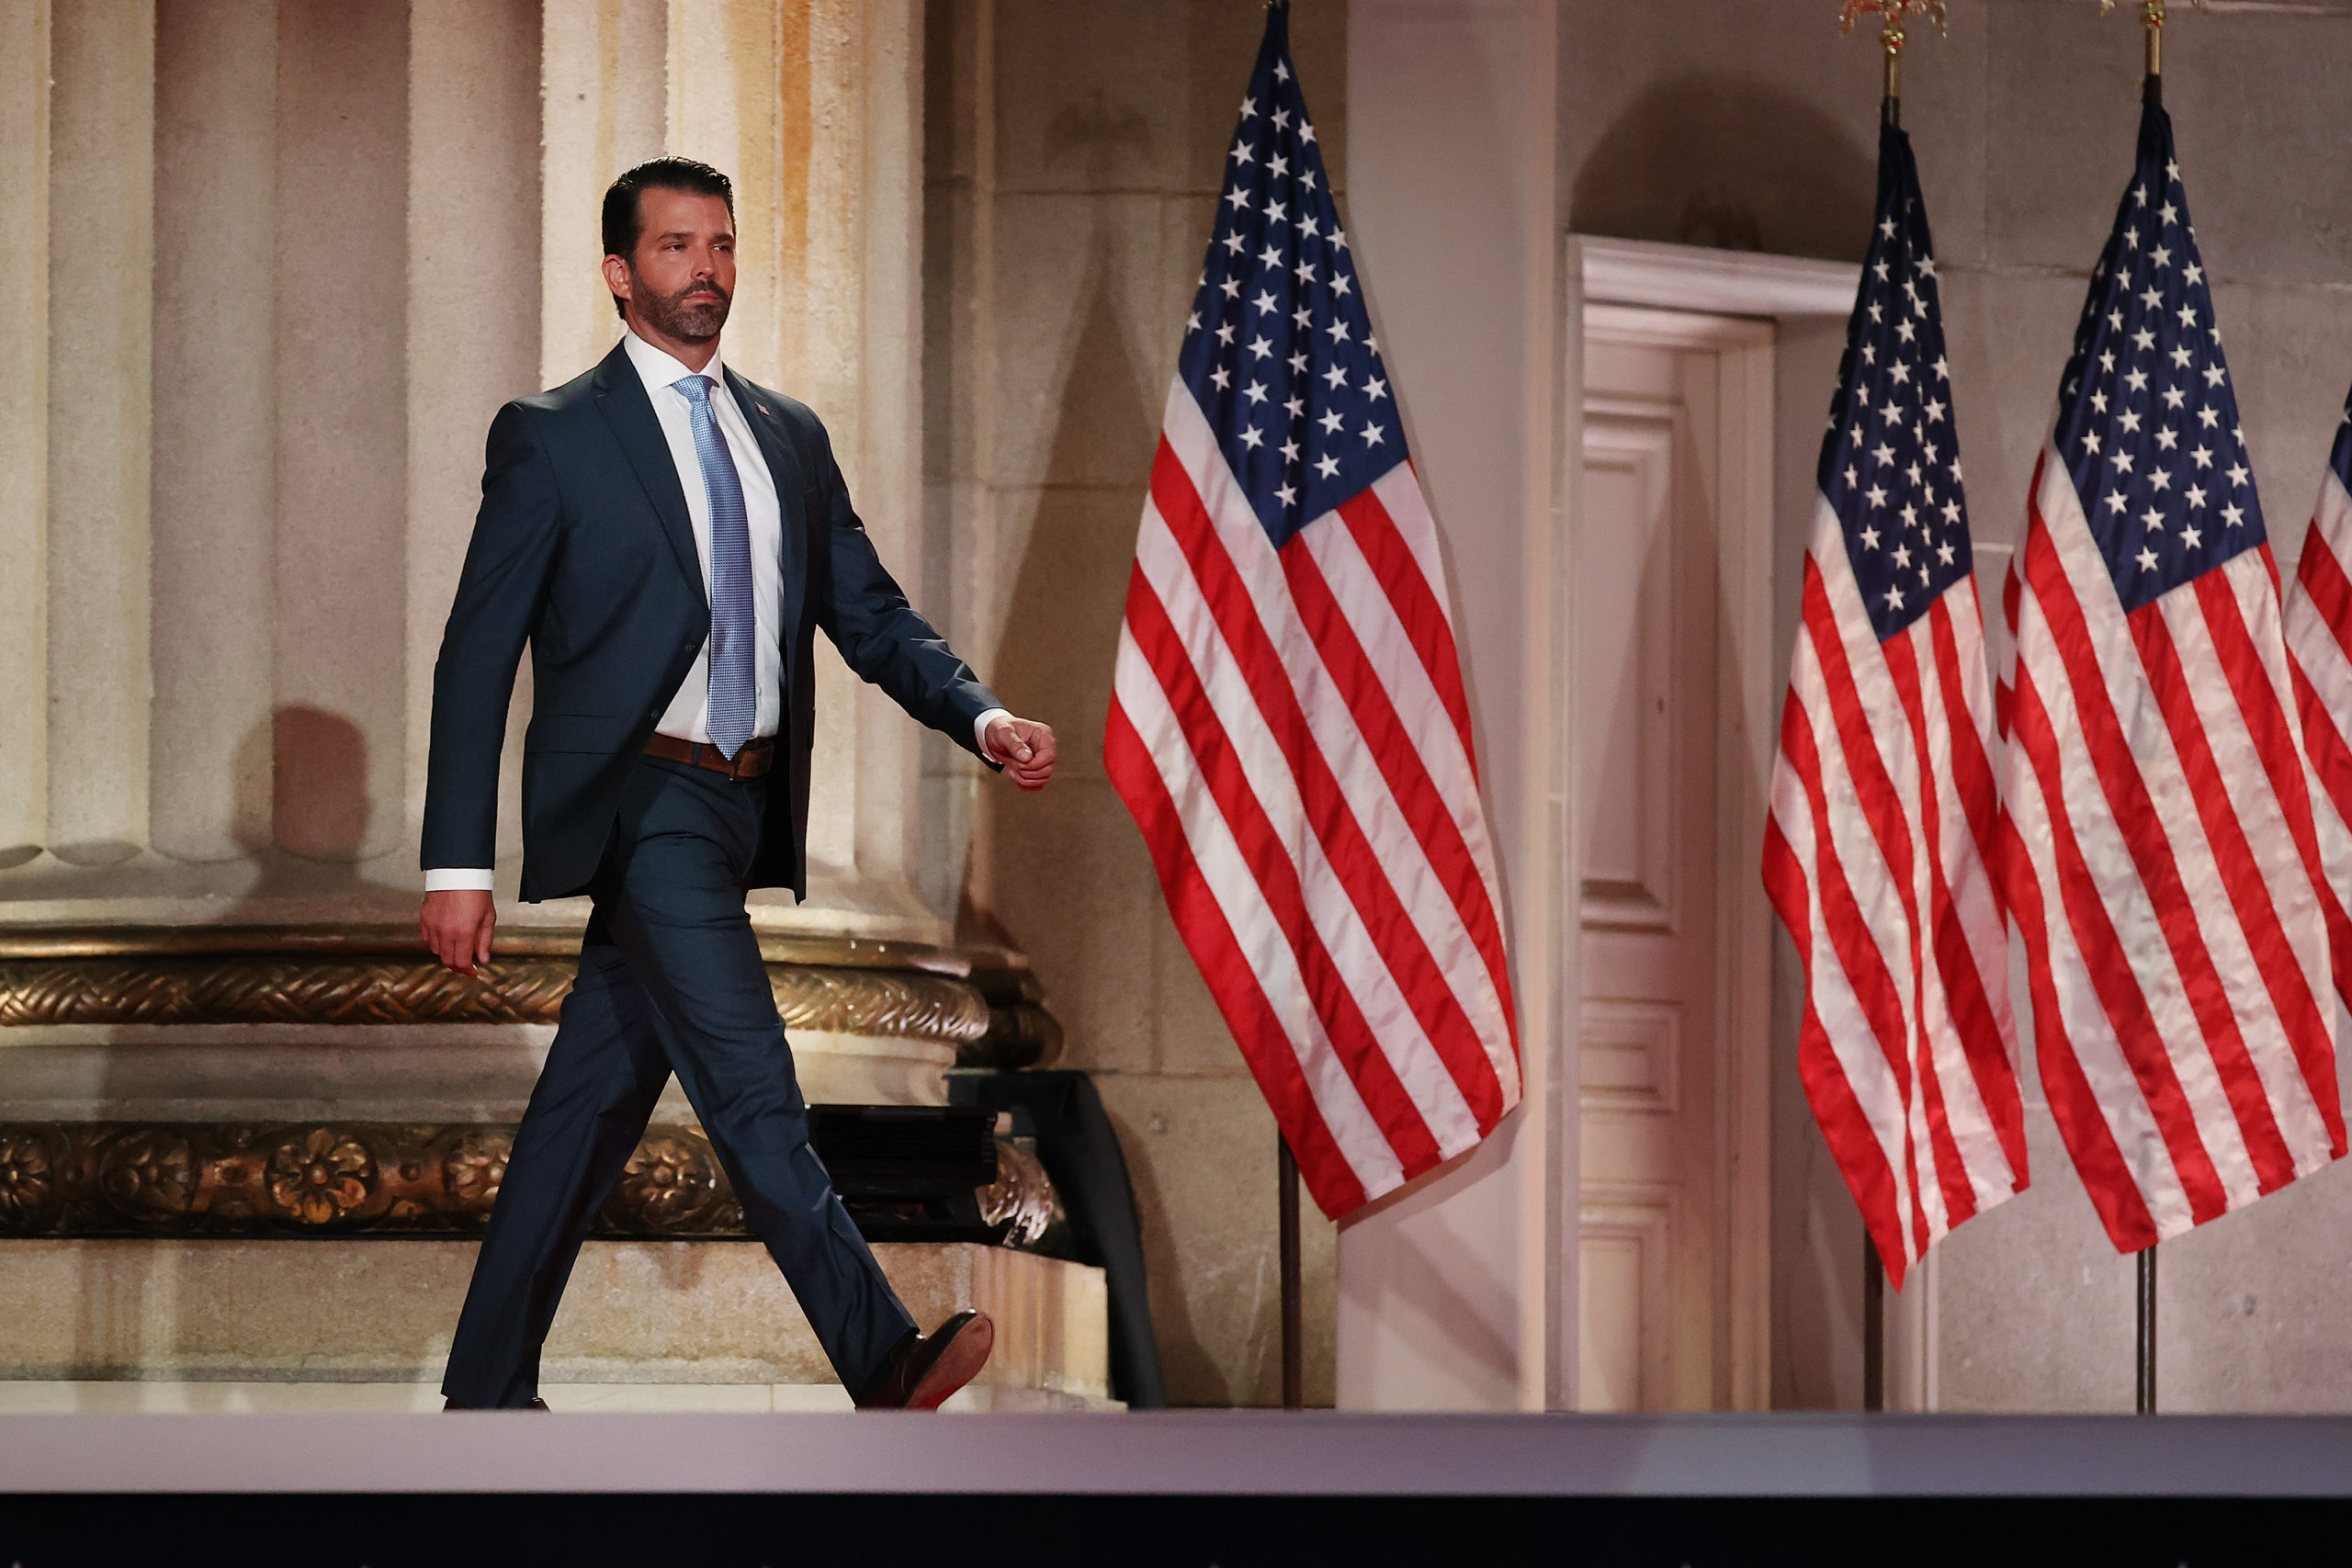 WASHINGTON, DC - AUGUST 24: Donald Trump Jr. steps out on stage before pre-recording his address to the Republican National Convention at the Mellon Auditorium on August 24, 2020 in Washington, DC. The novel coronavirus pandemic has forced the Republican Party to move away from an in-person convention to a televised format, similar to the Democratic Party's convention a week earlier. (Photo by Chip Somodevilla/Getty Images)